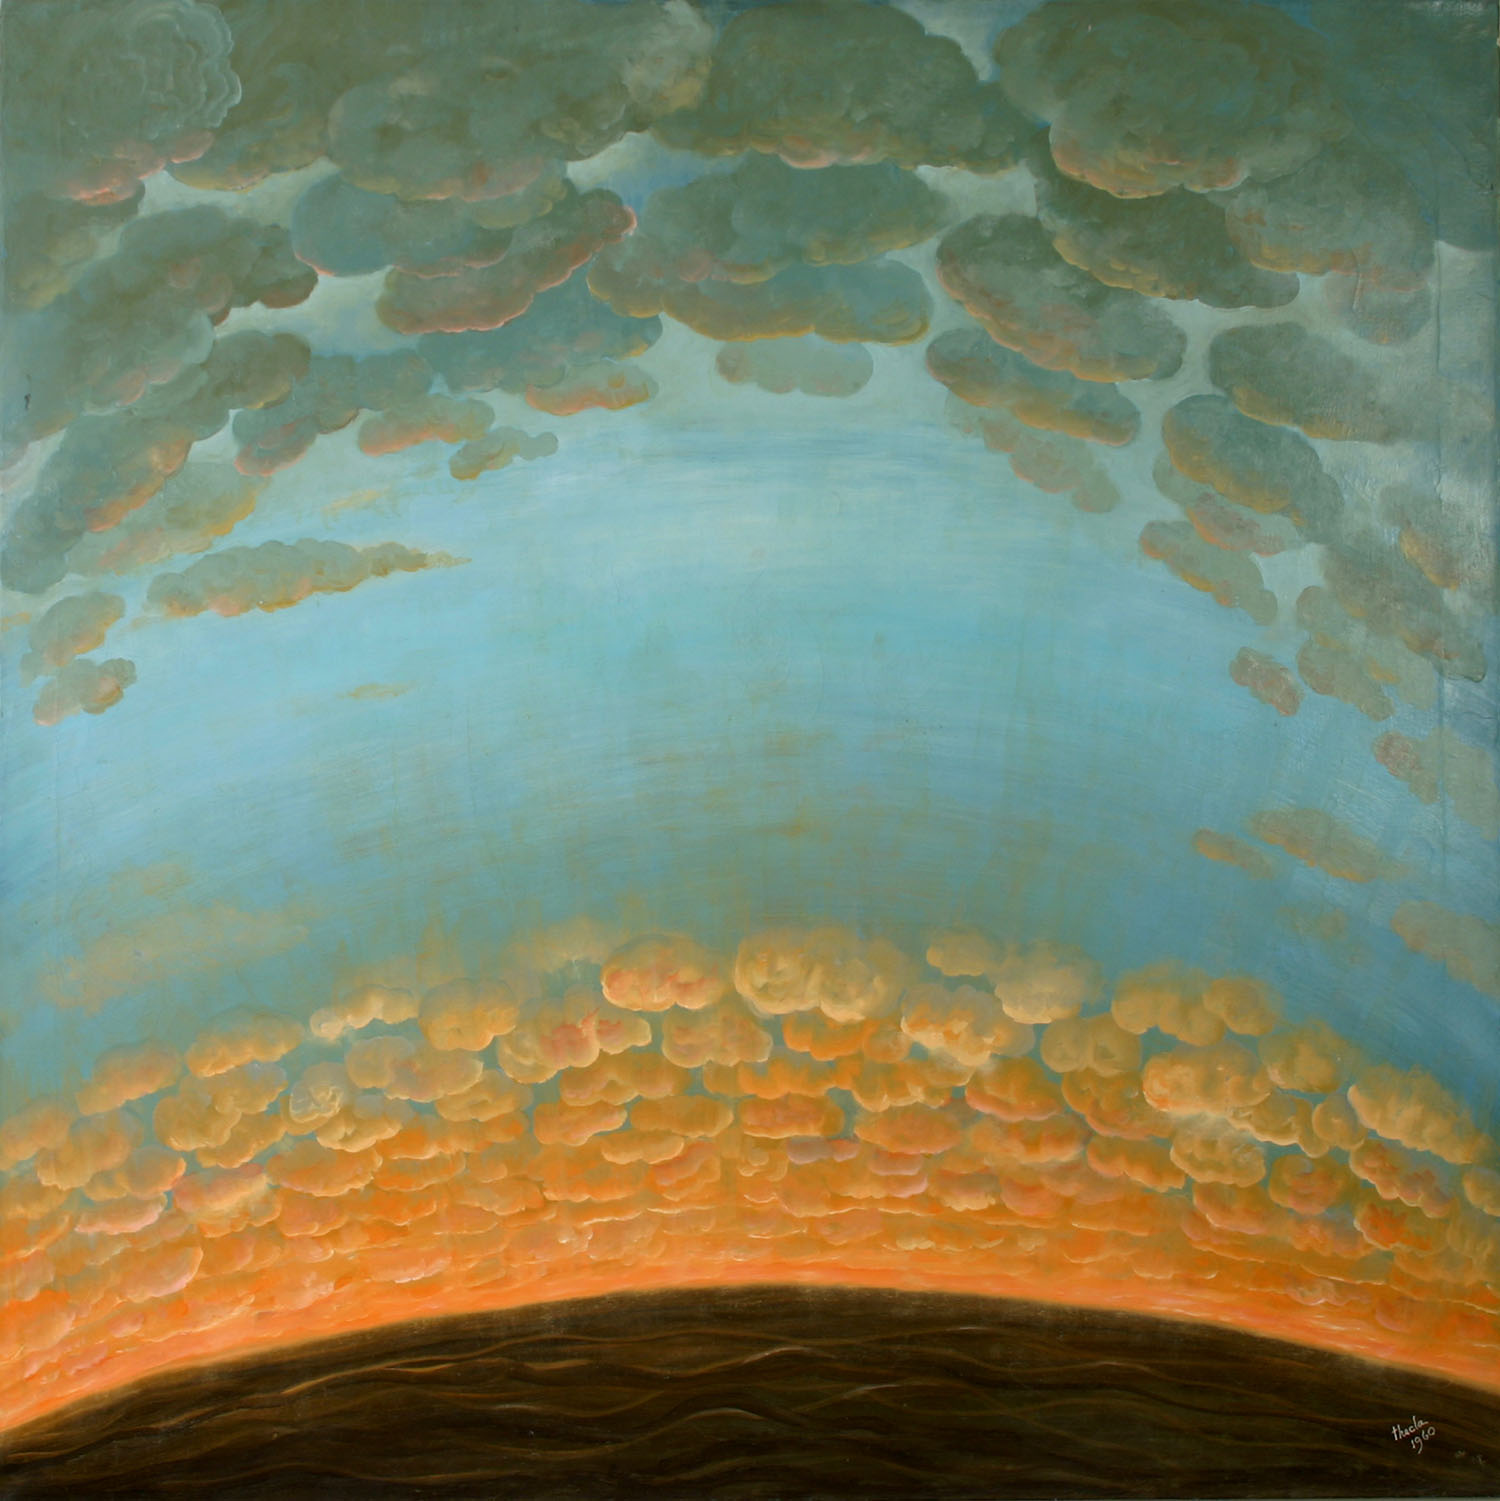 Julia Thecla, In The Clouds, 1960. Oil on Canvas. Collection of DePaul University, gift of Helen T. Findlay, 5212